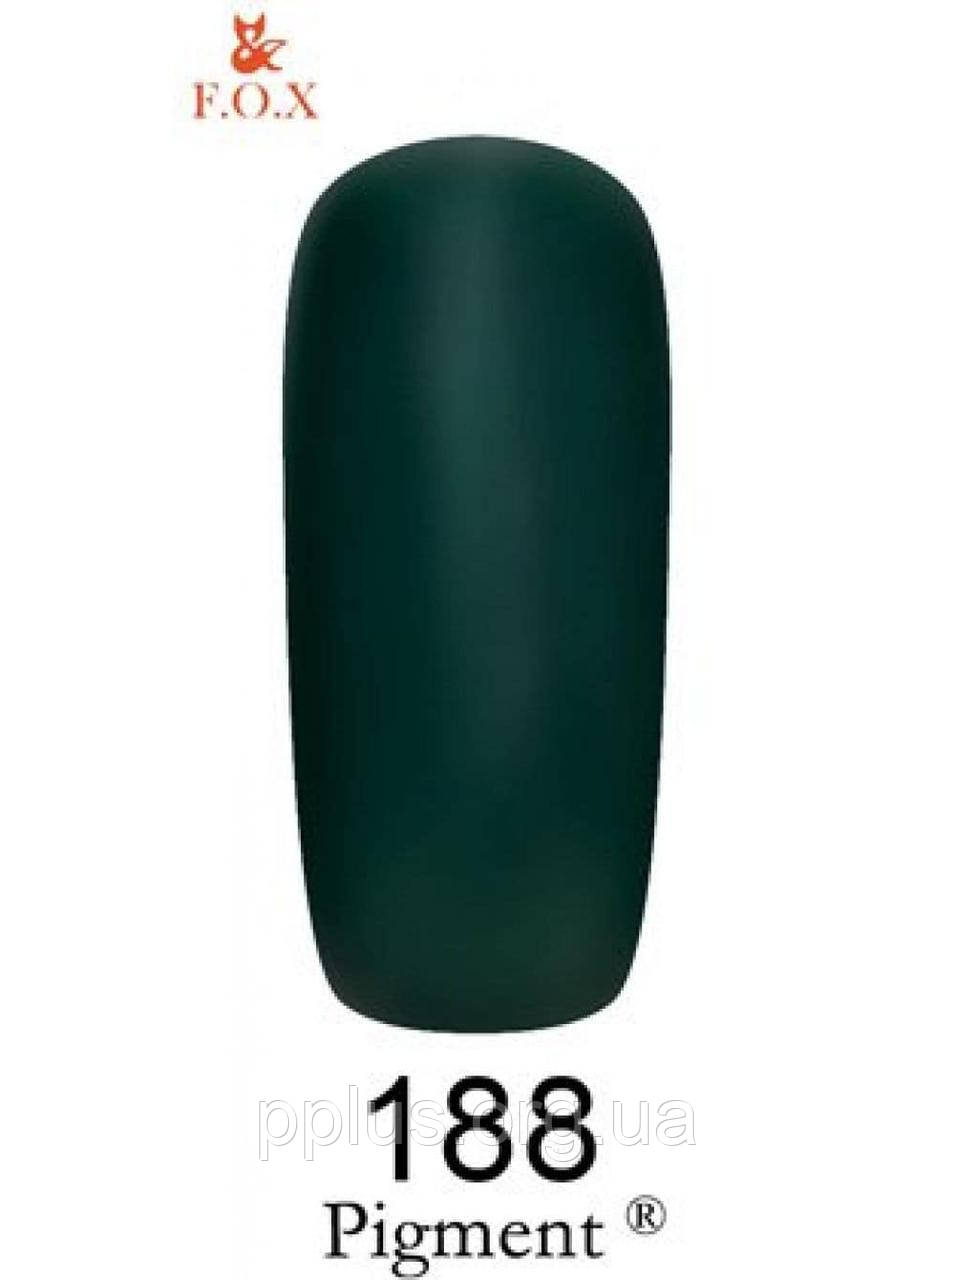 188 F.O.X gel-polish gold Pigment 6 мл